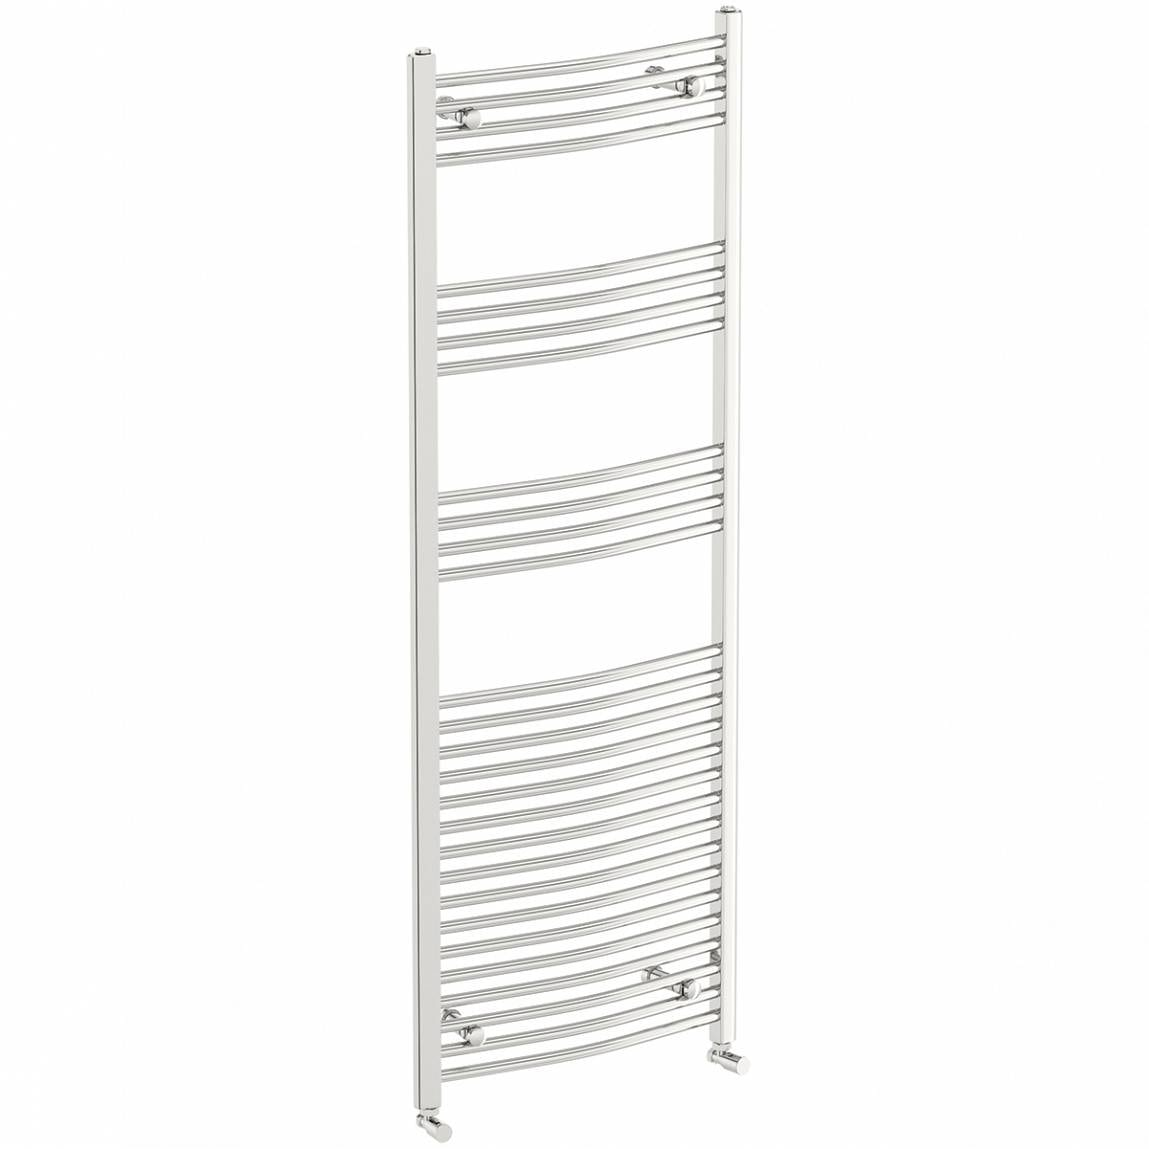 Orchard Elsdon heated towel rail 1650 x 600